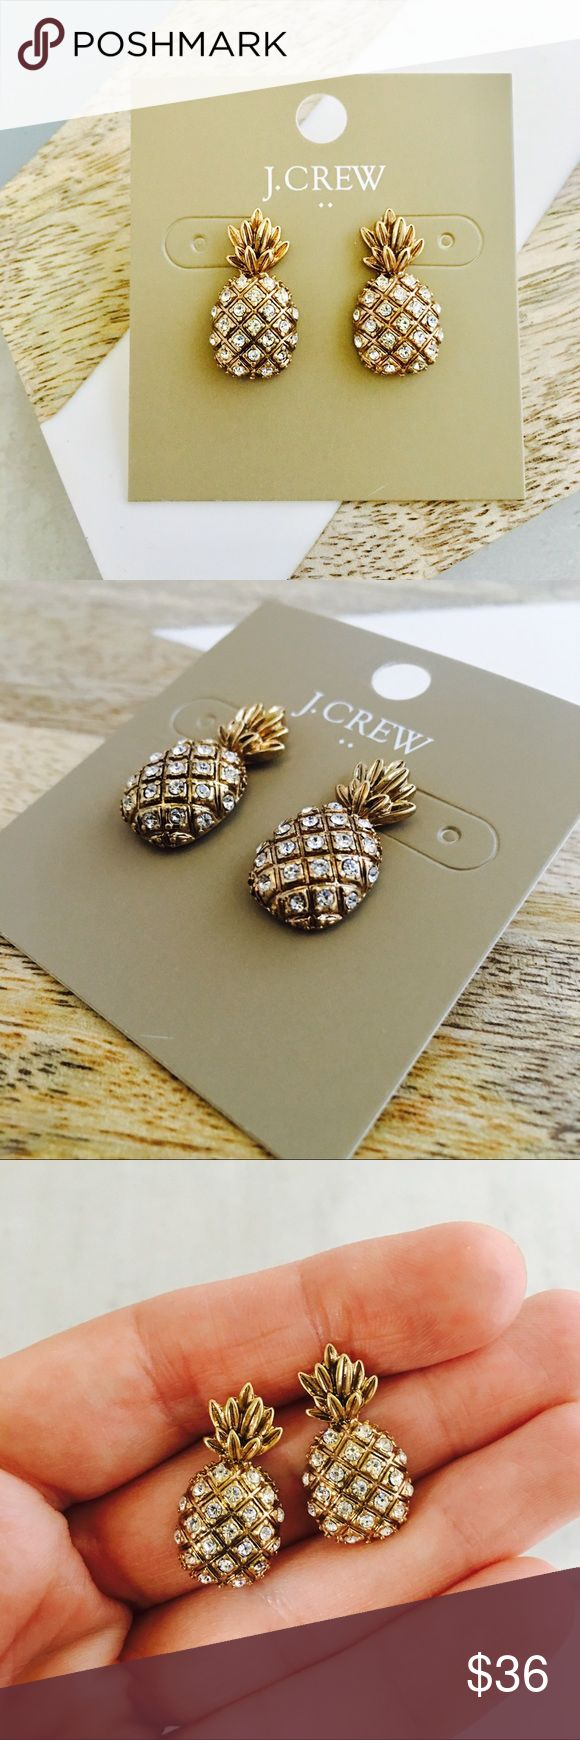 "J. Crew Limited Edition Pineapple Studs GORGEOUS signed, brass, crystal adorned pineapple studs. The detail on these is exquisite as is the quality. Brilliant summer item. 15/16"" x 1/2"" J. Crew Jewelry Earrings"